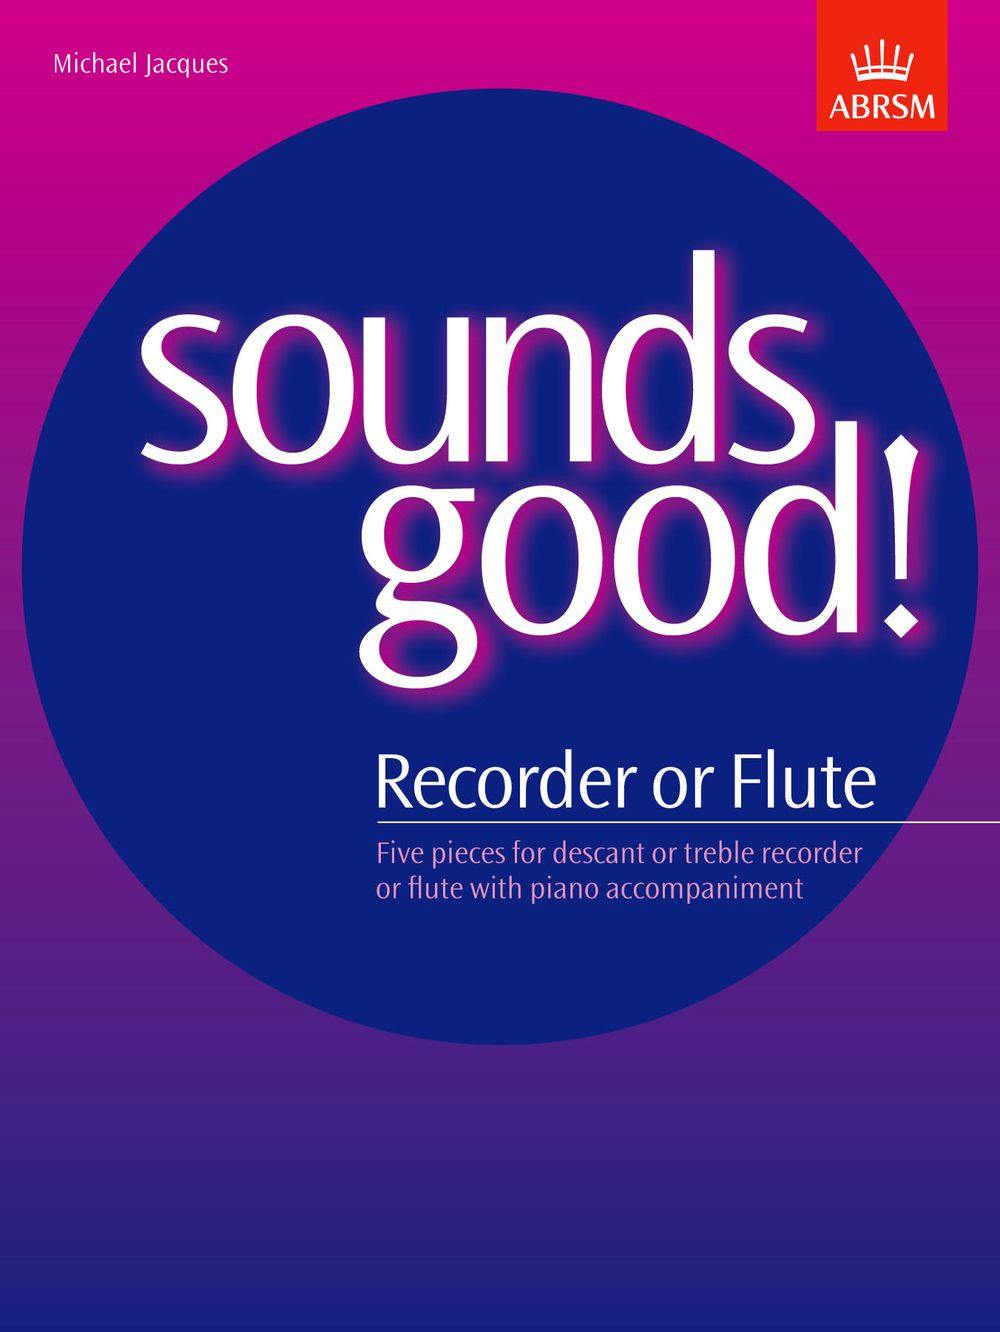 Sounds Good! for Recorder or Flute - Biggars Music